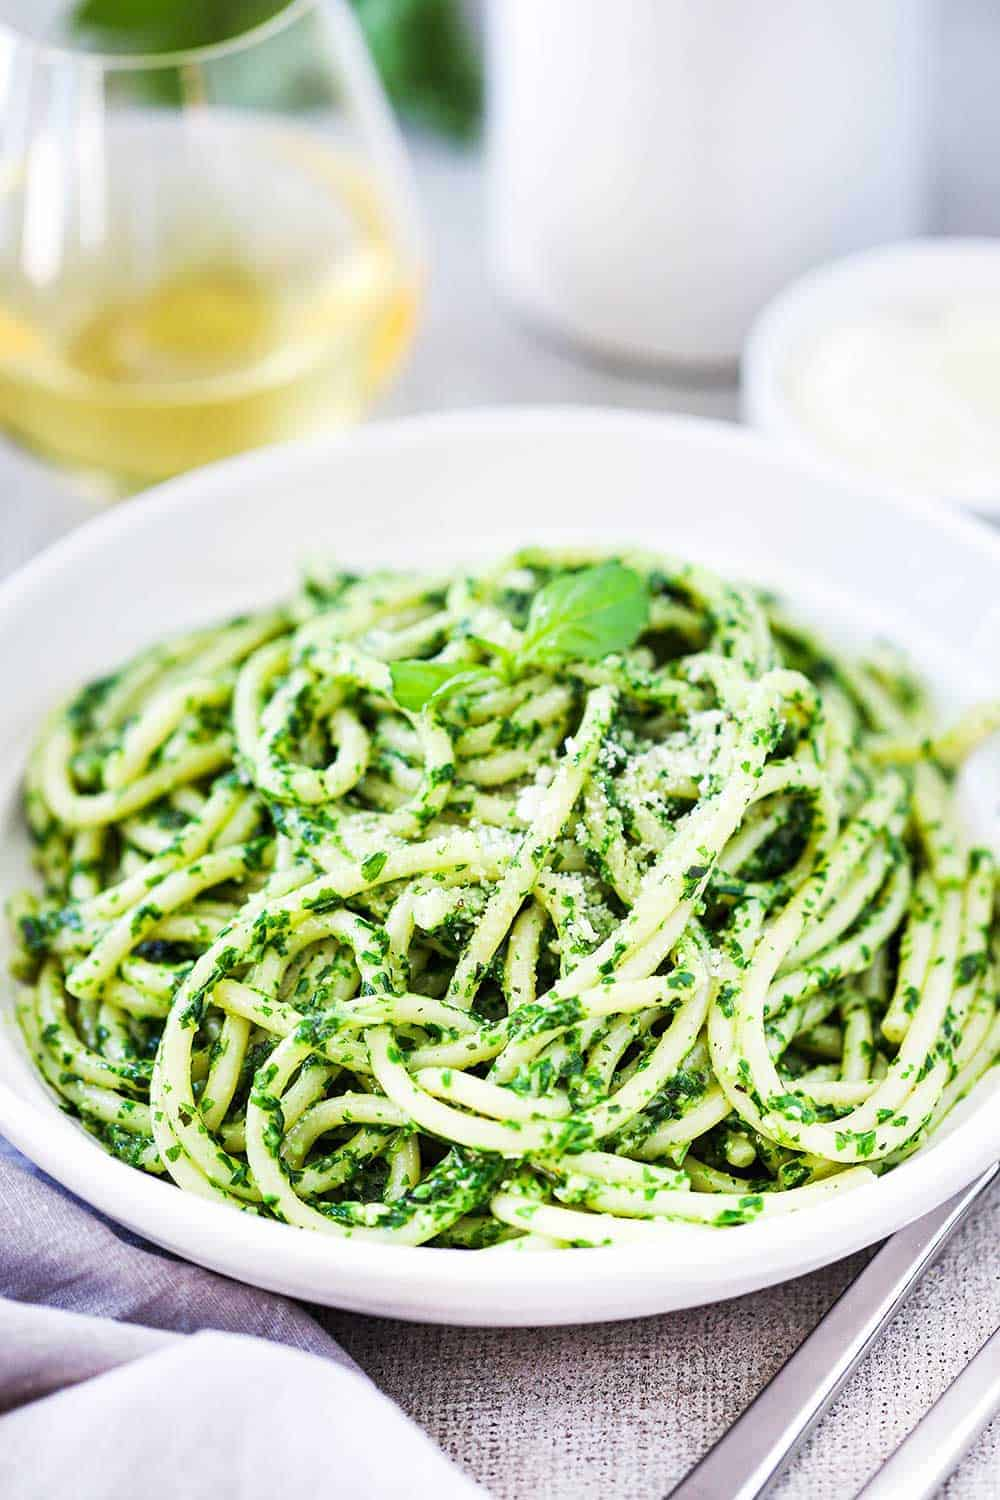 Pesto spaghetti served in a large white pasta bowl with shredded parmesan on top.